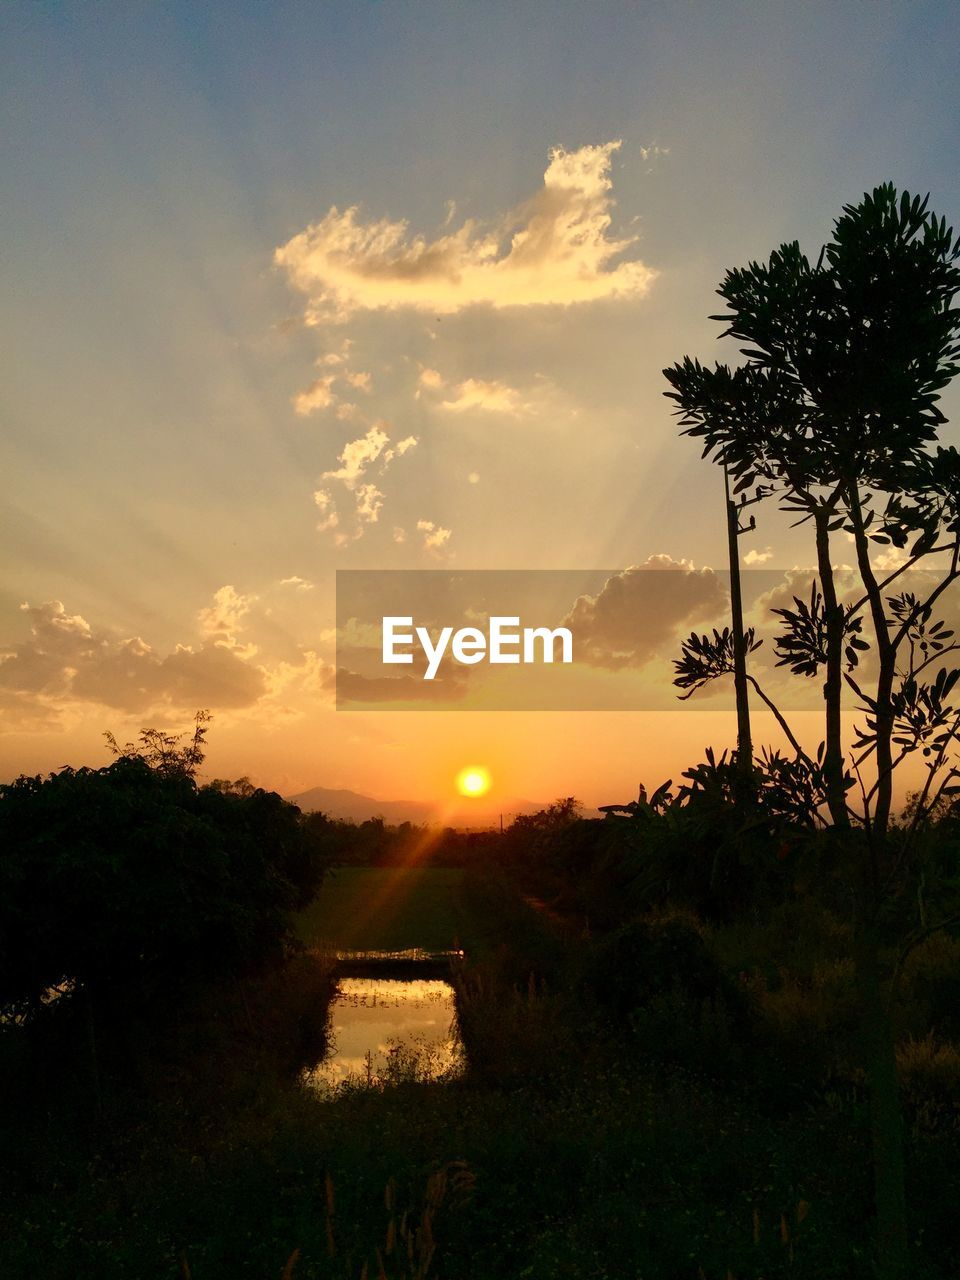 sunset, sky, plant, tree, cloud - sky, beauty in nature, nature, scenics - nature, tranquil scene, growth, tranquility, orange color, no people, silhouette, sun, field, sunlight, architecture, outdoors, built structure